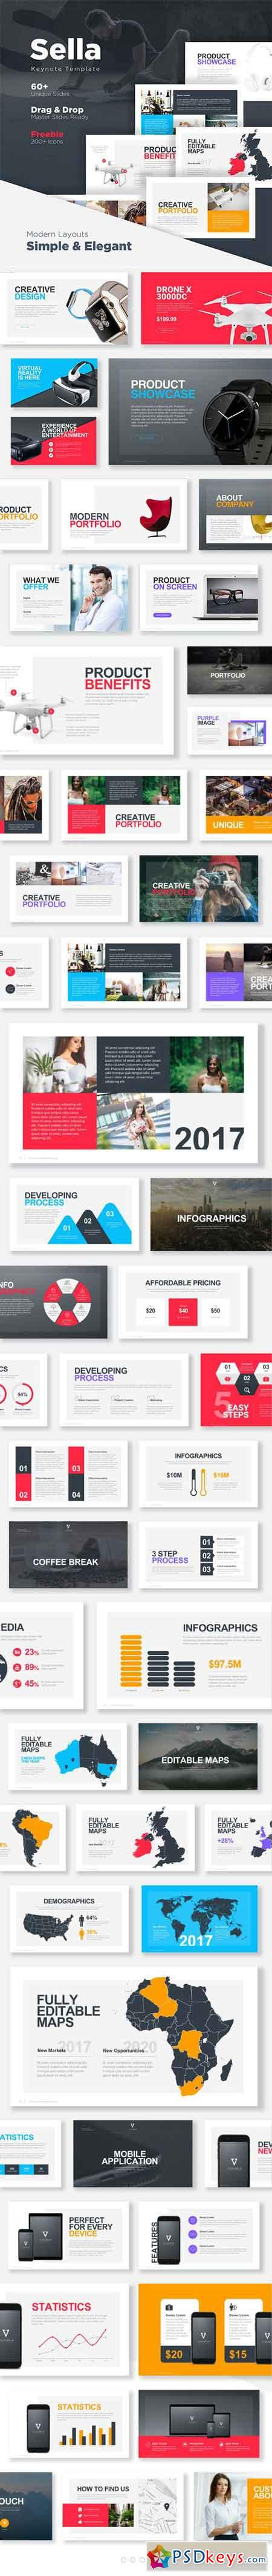 Sella Keynote Template 18061881